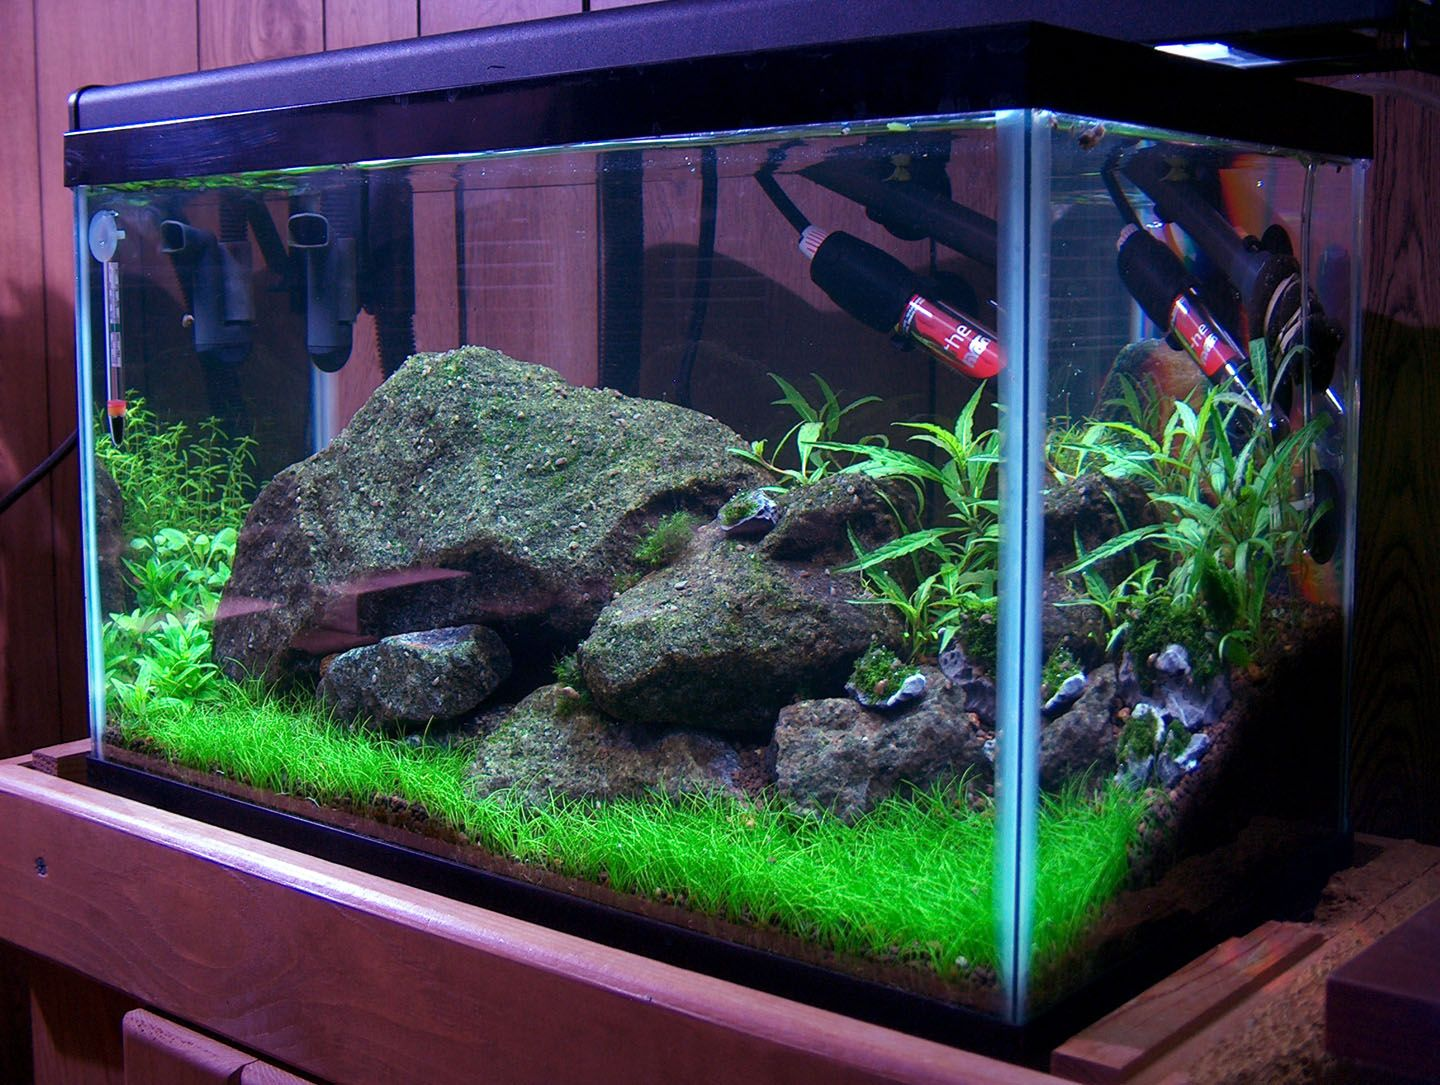 Fish aquarium is good in home - 10 Gallon Home Aquariums Picture